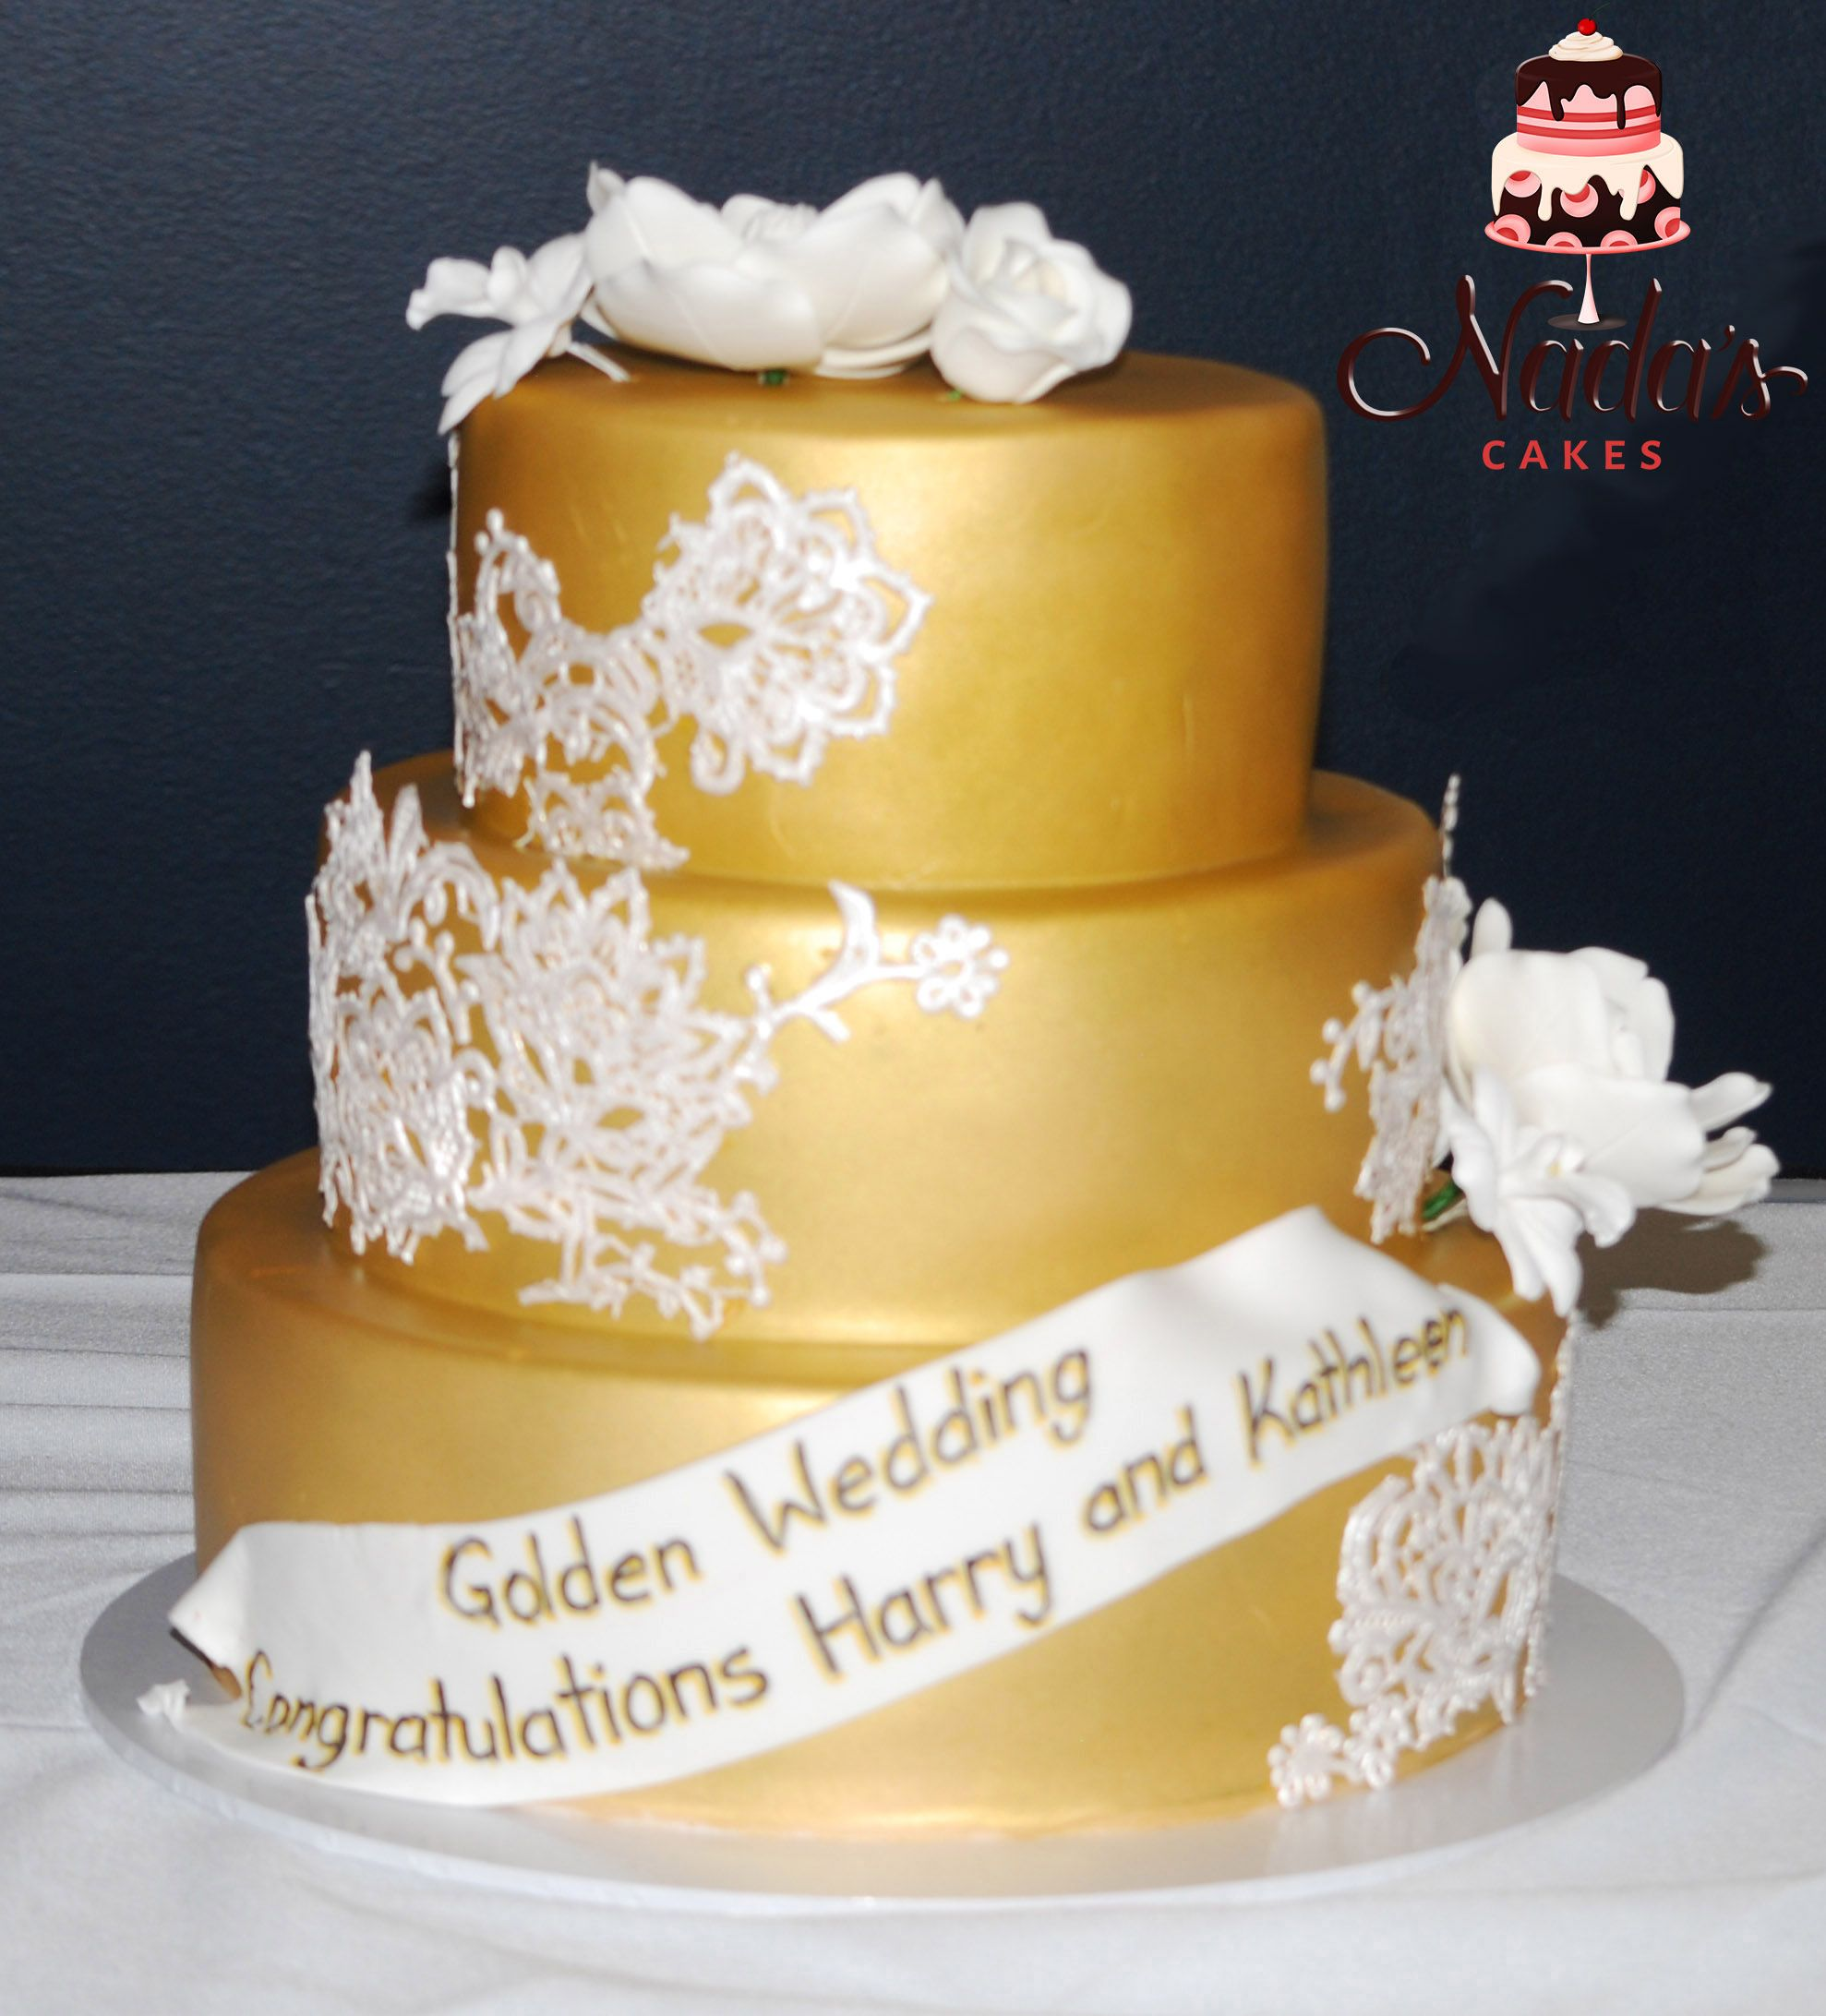 Gold Wedding Anniversary Cake | Special Occasion cakes | Pinterest ...